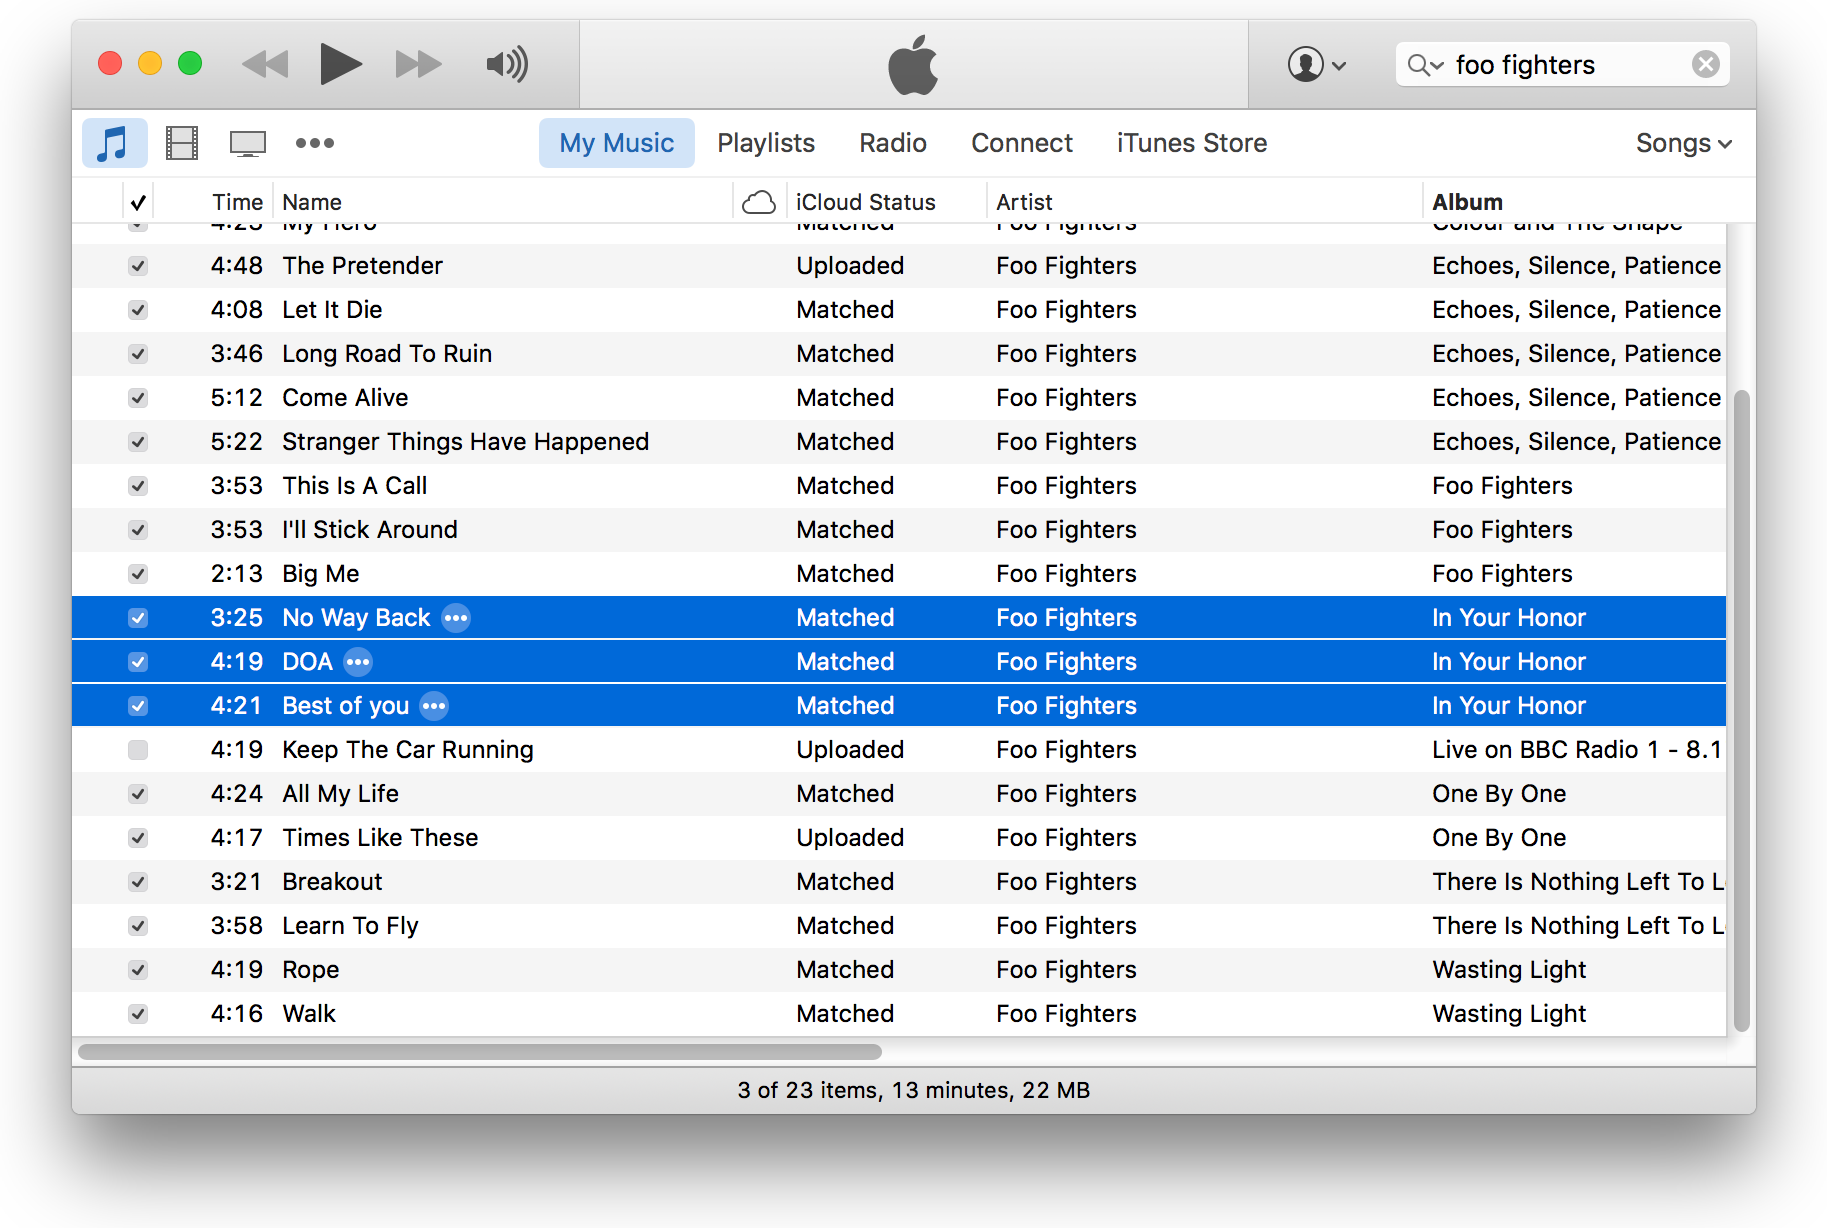 Fix for same album or artist showing twice in iTunes